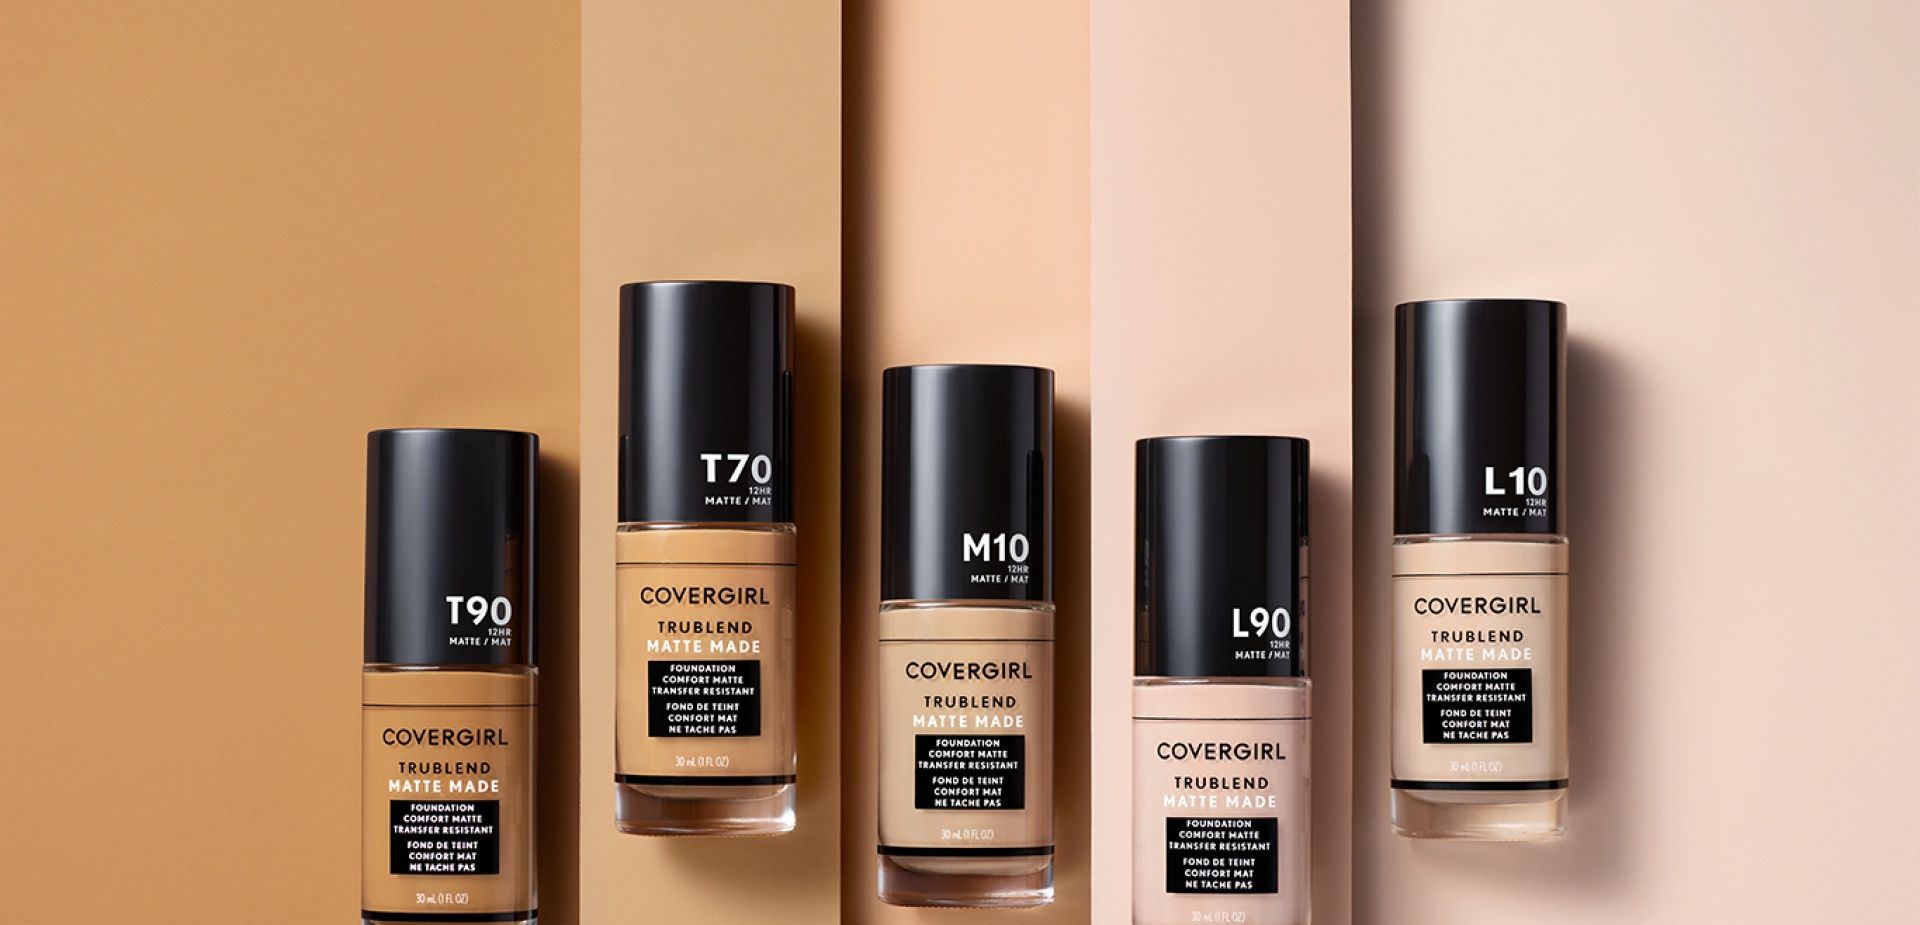 COVERGIRL to open first-ever flagship store